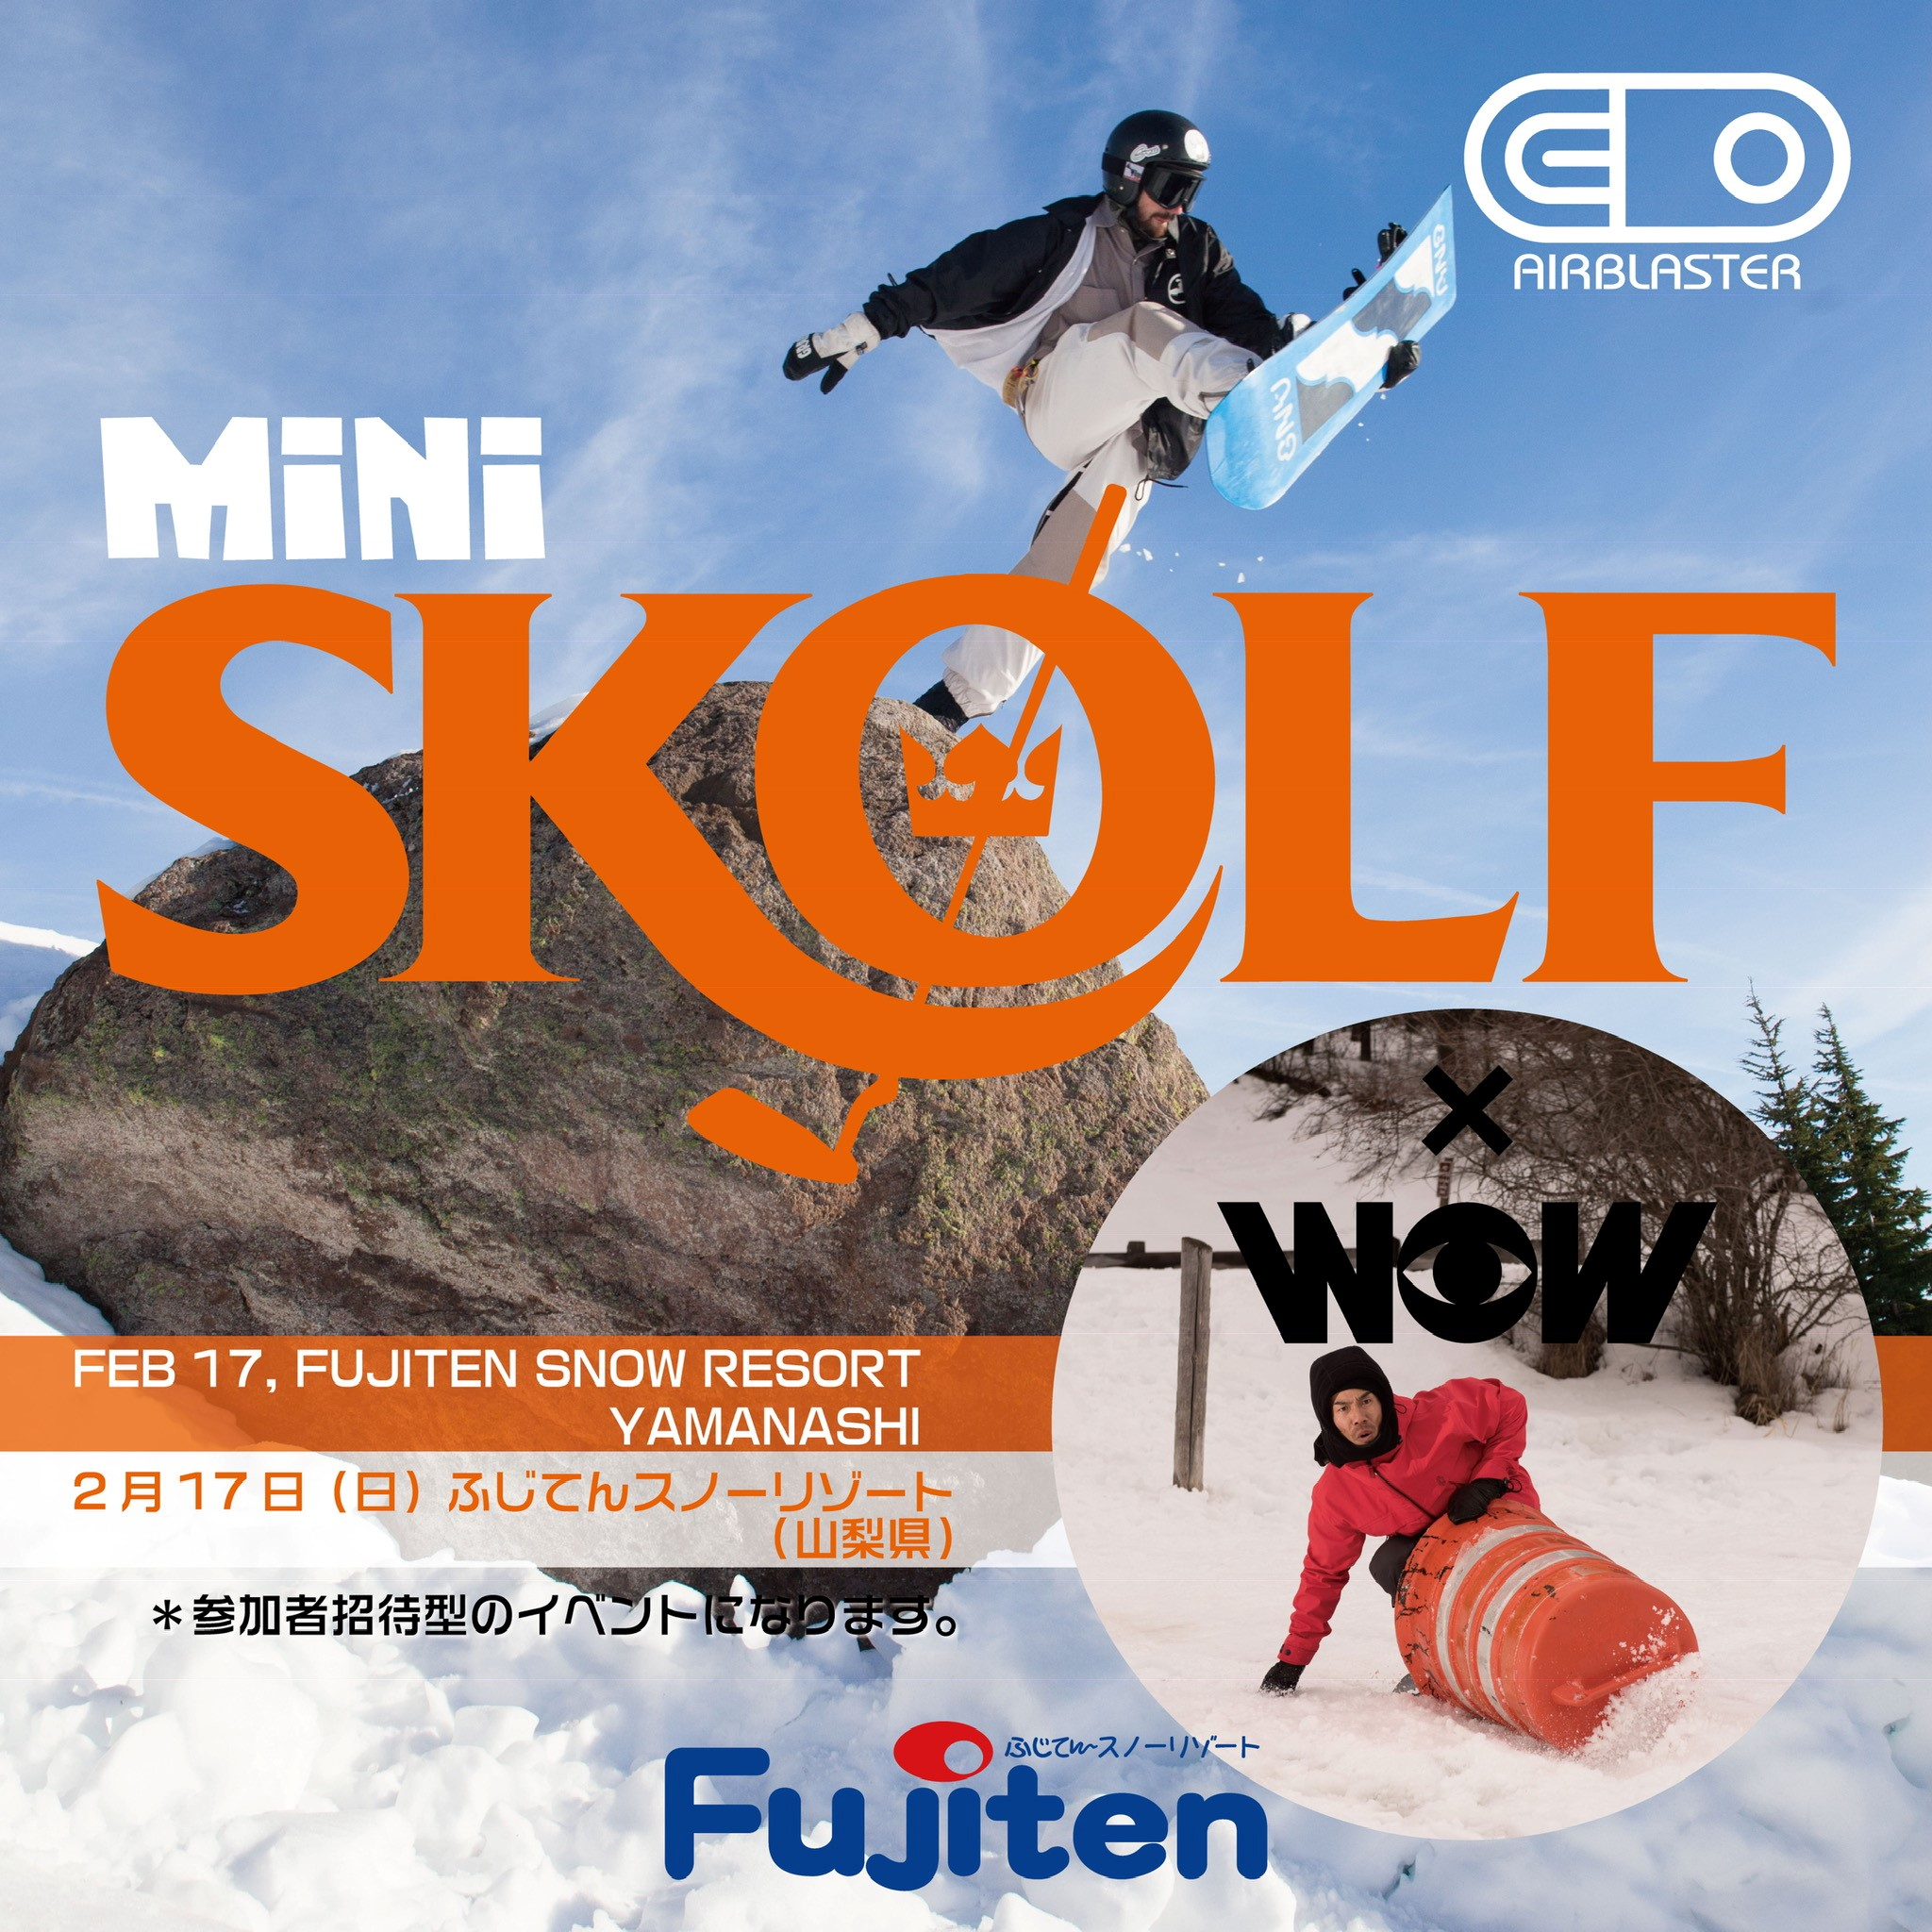 MINI SKOLF 1819